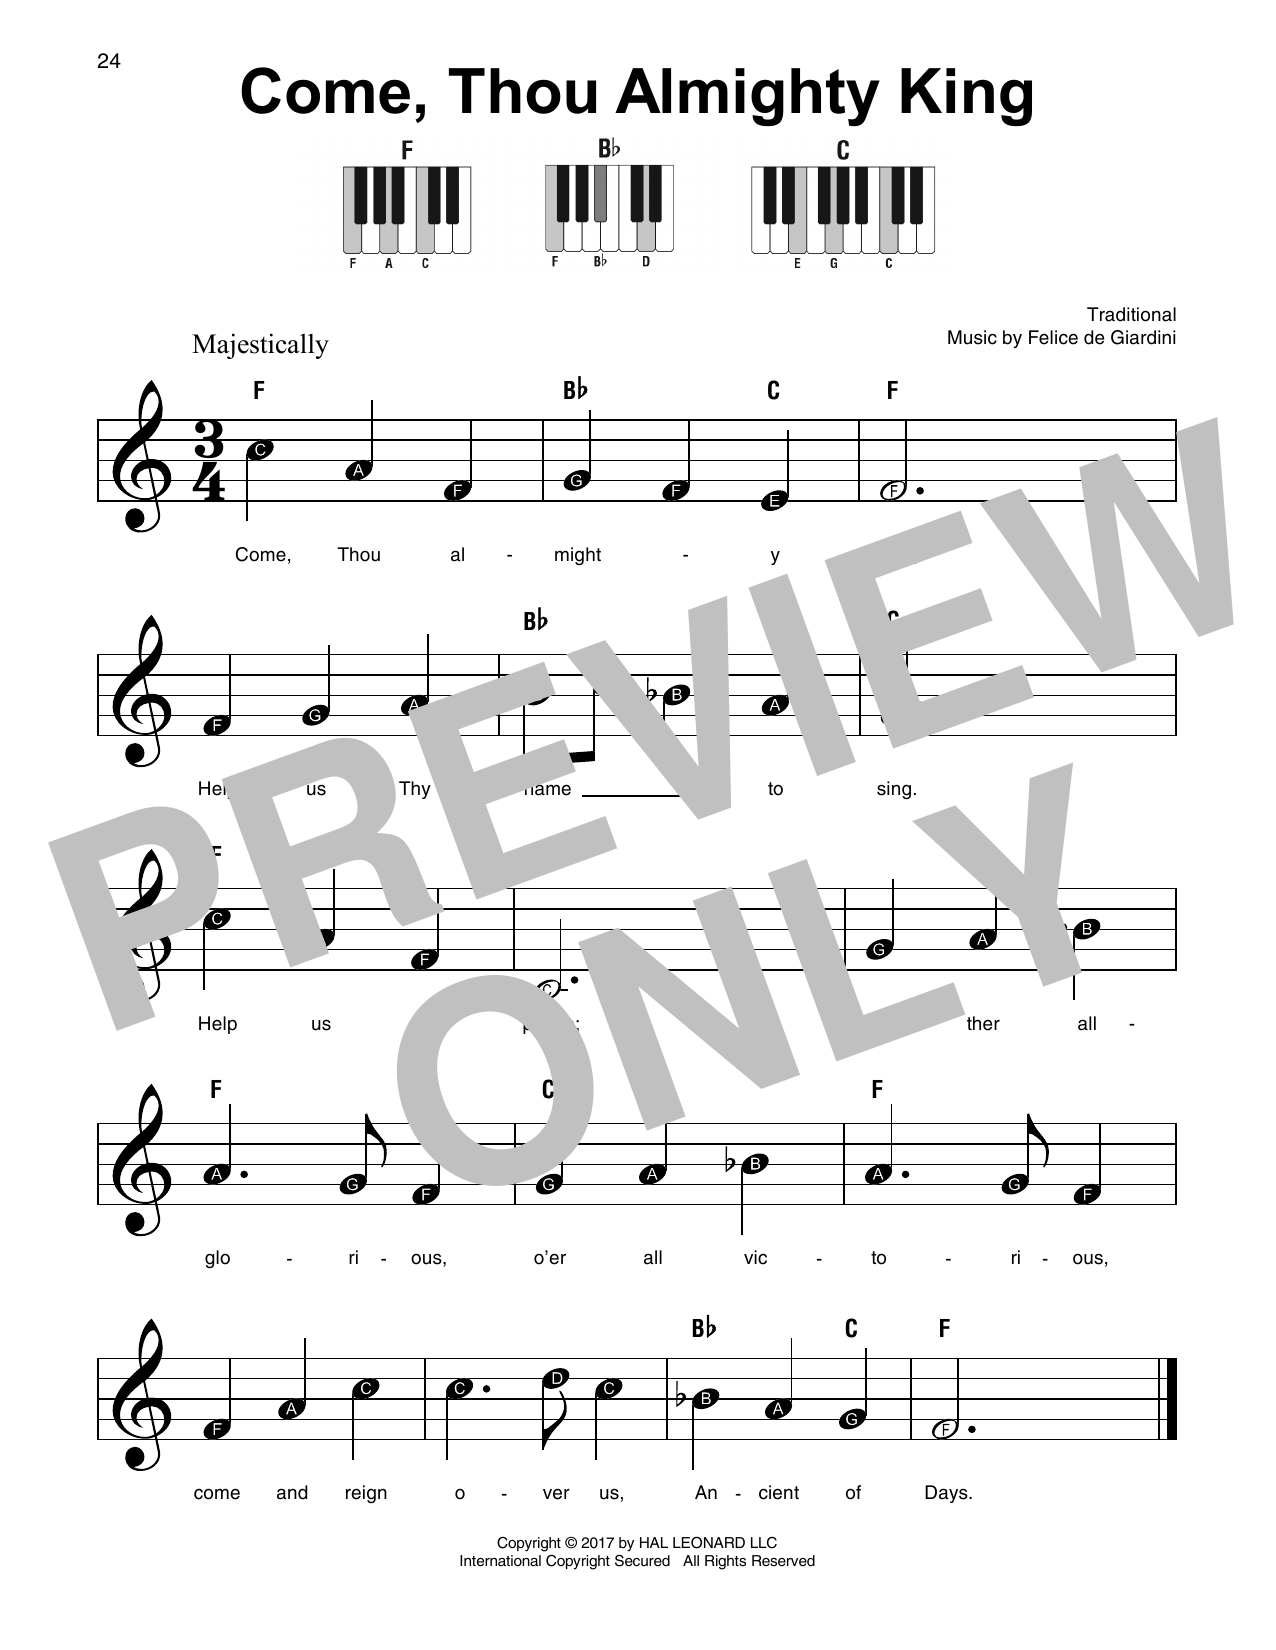 Come, Thou Almighty King Sheet Music